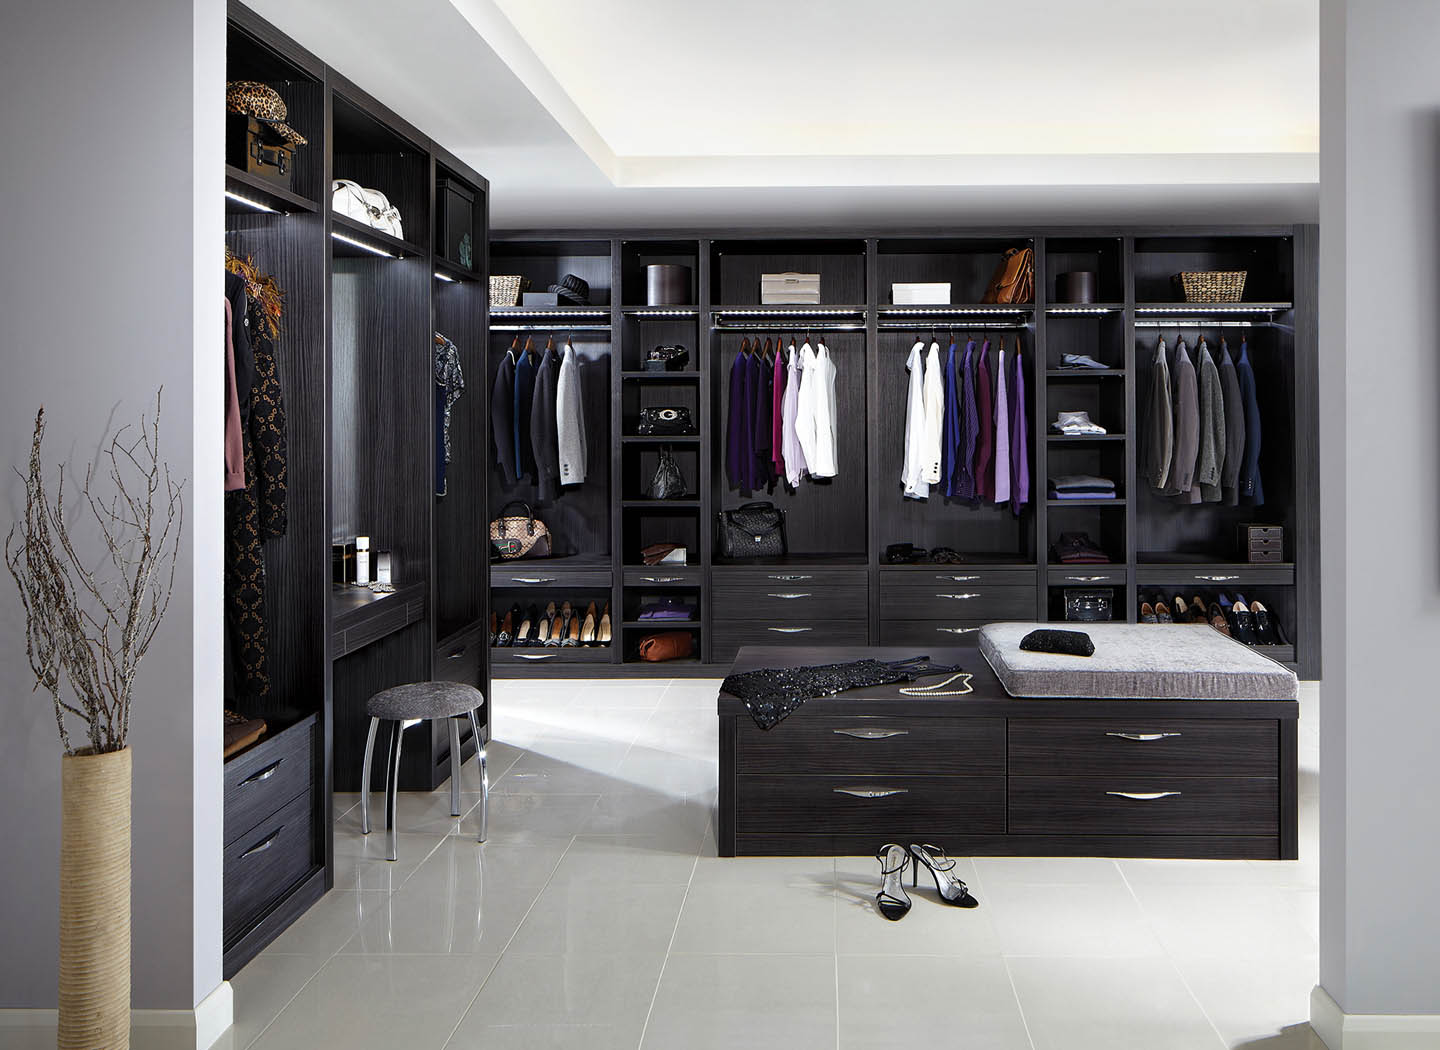 A Strachan bespoke dressing room designed especially for you